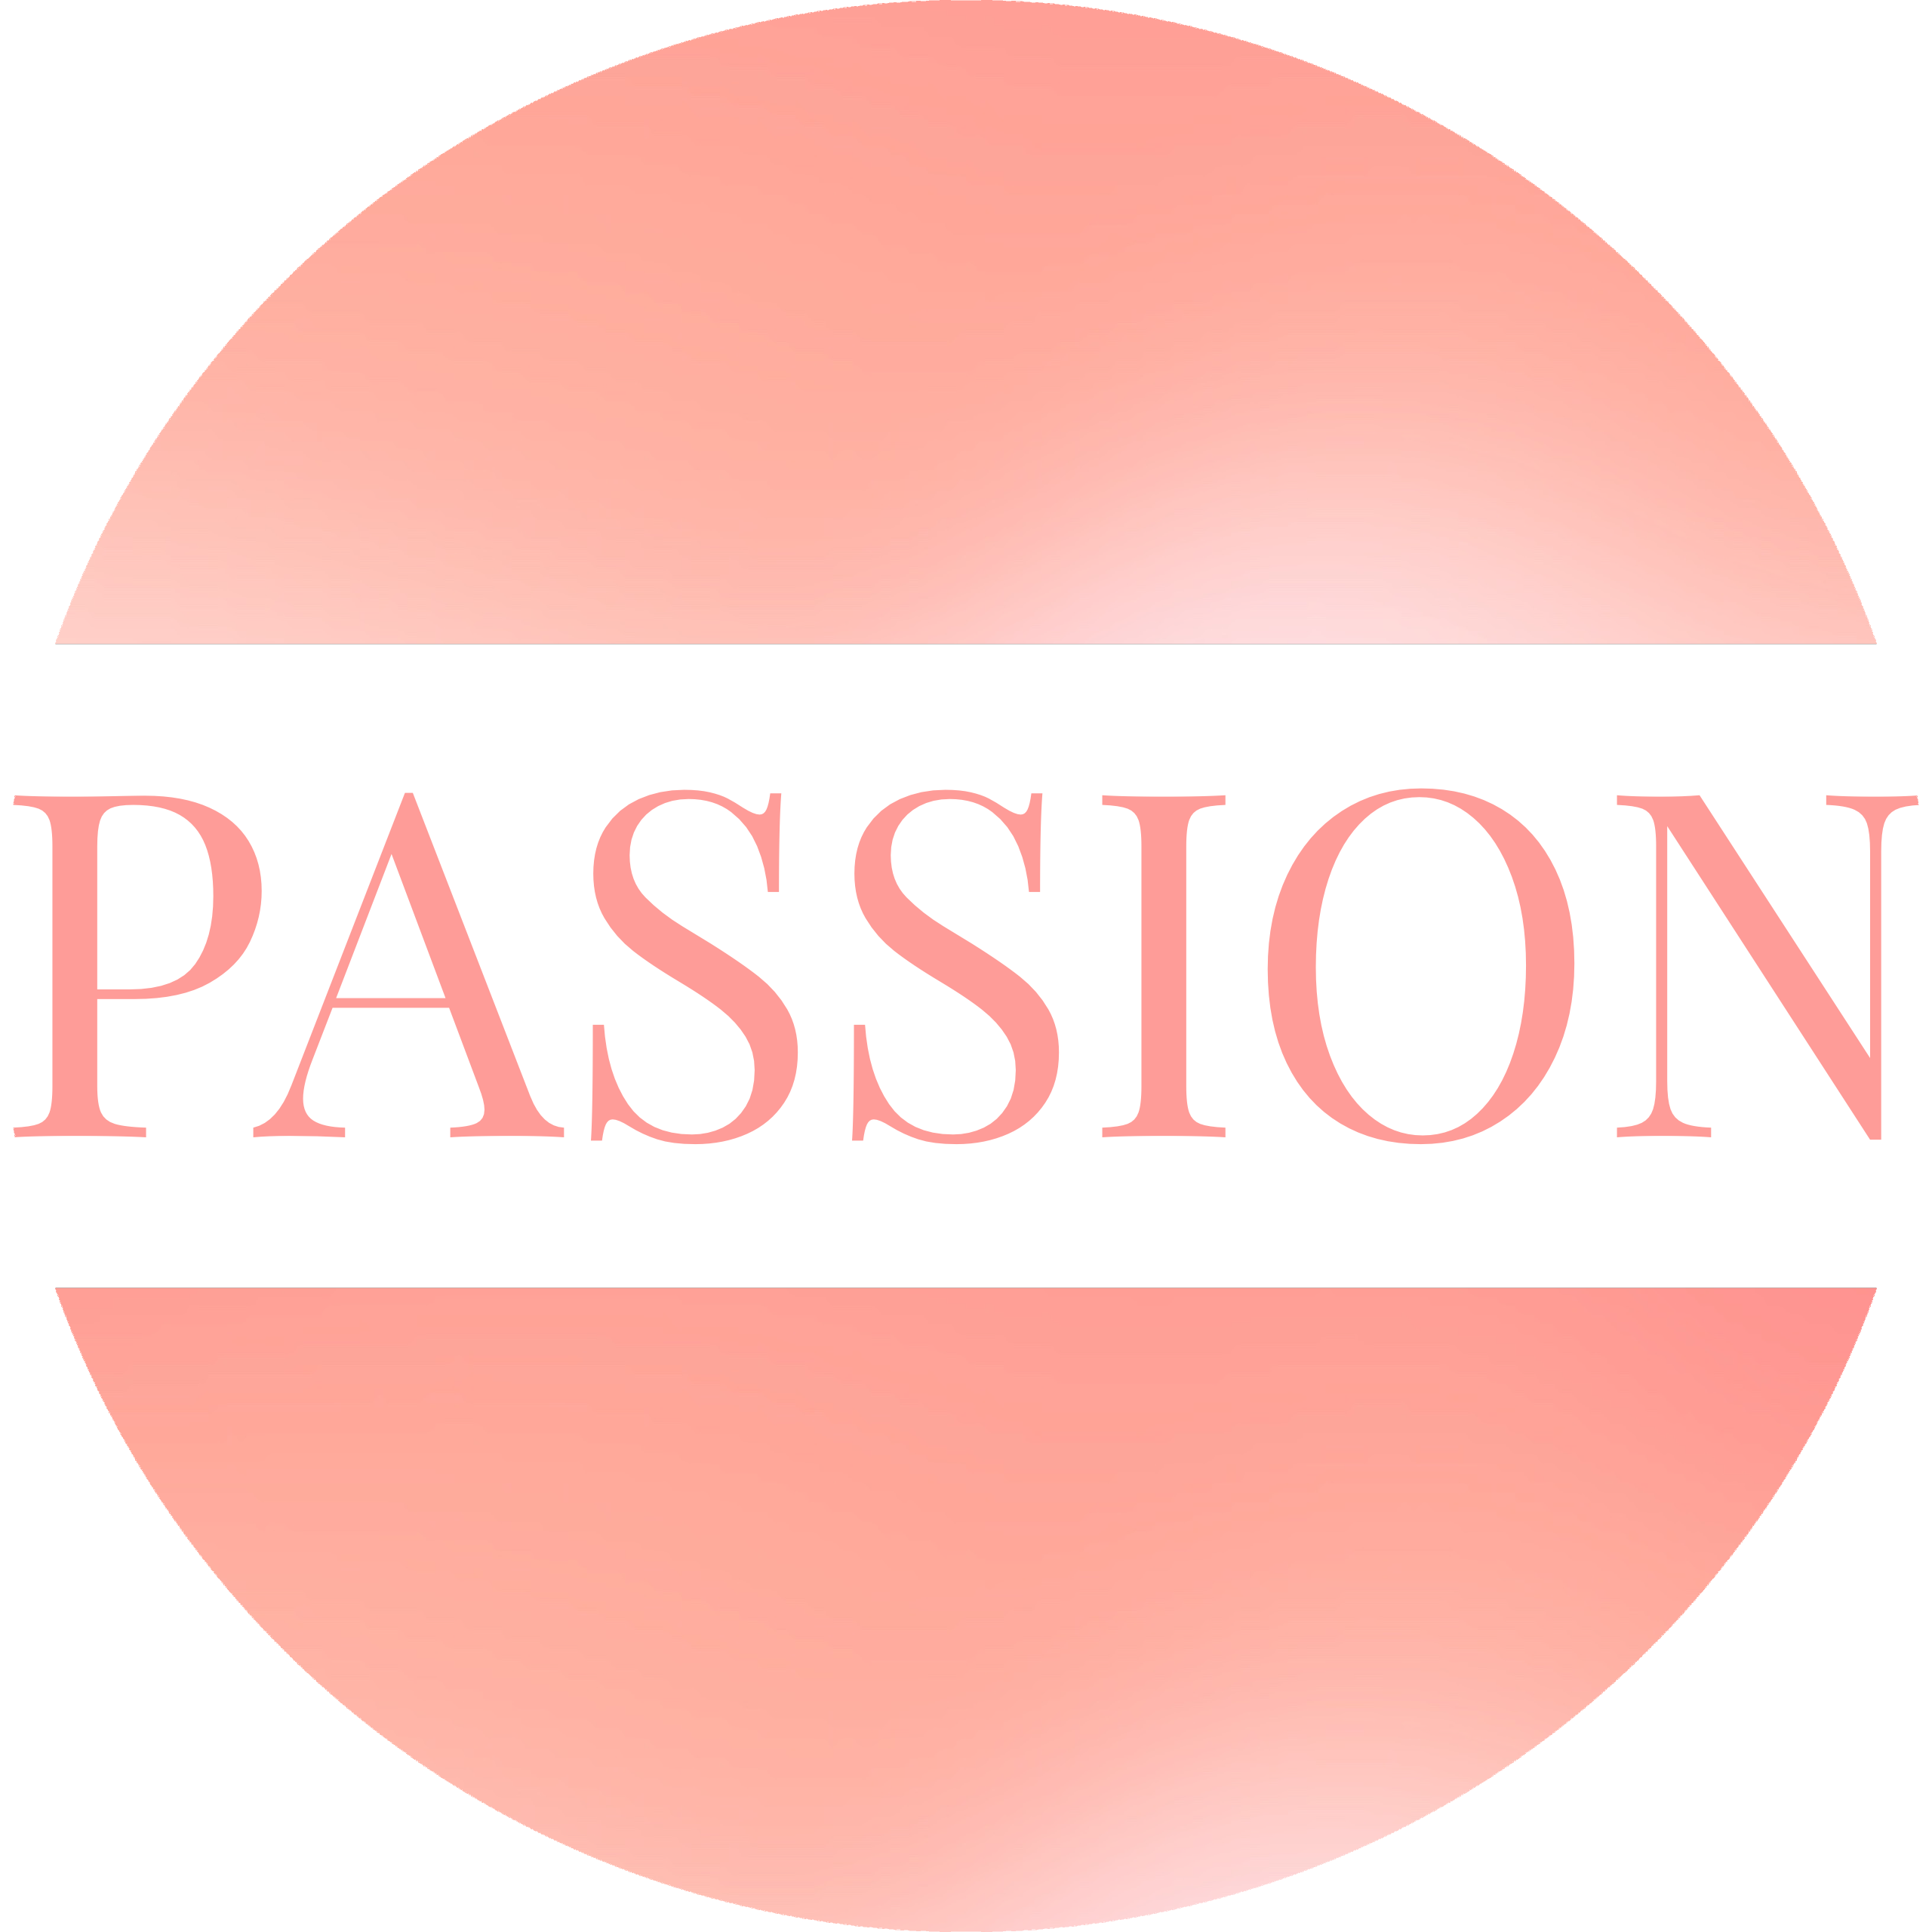 Round image in a glowing light pink with a white banner running through the middle with the word PASSION in a matching light pink.